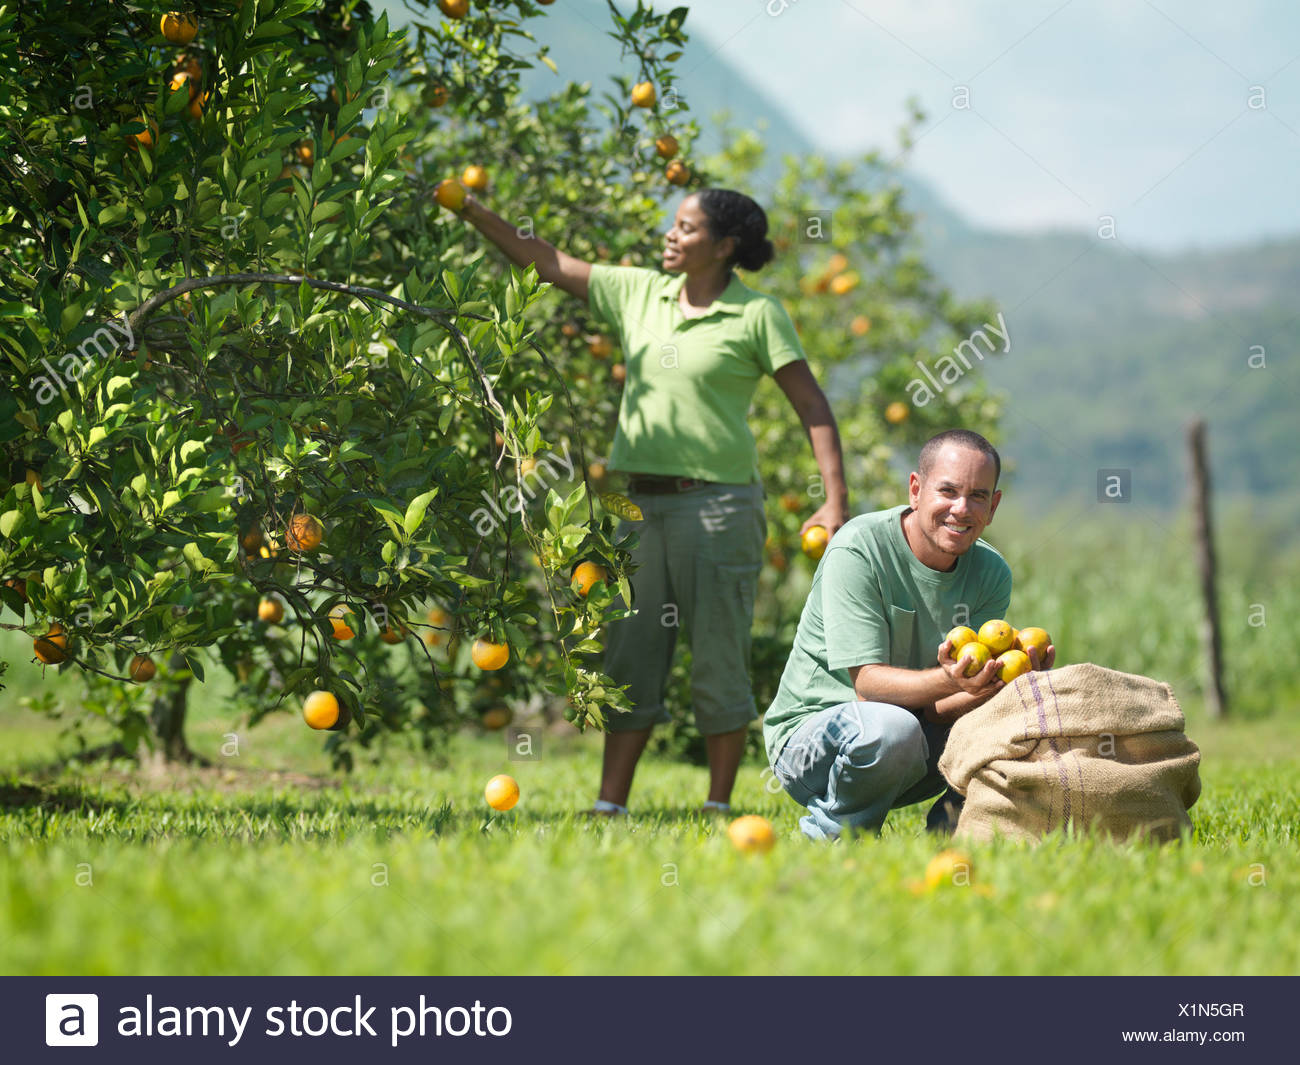 Workers Picking Oranges - Stock Image